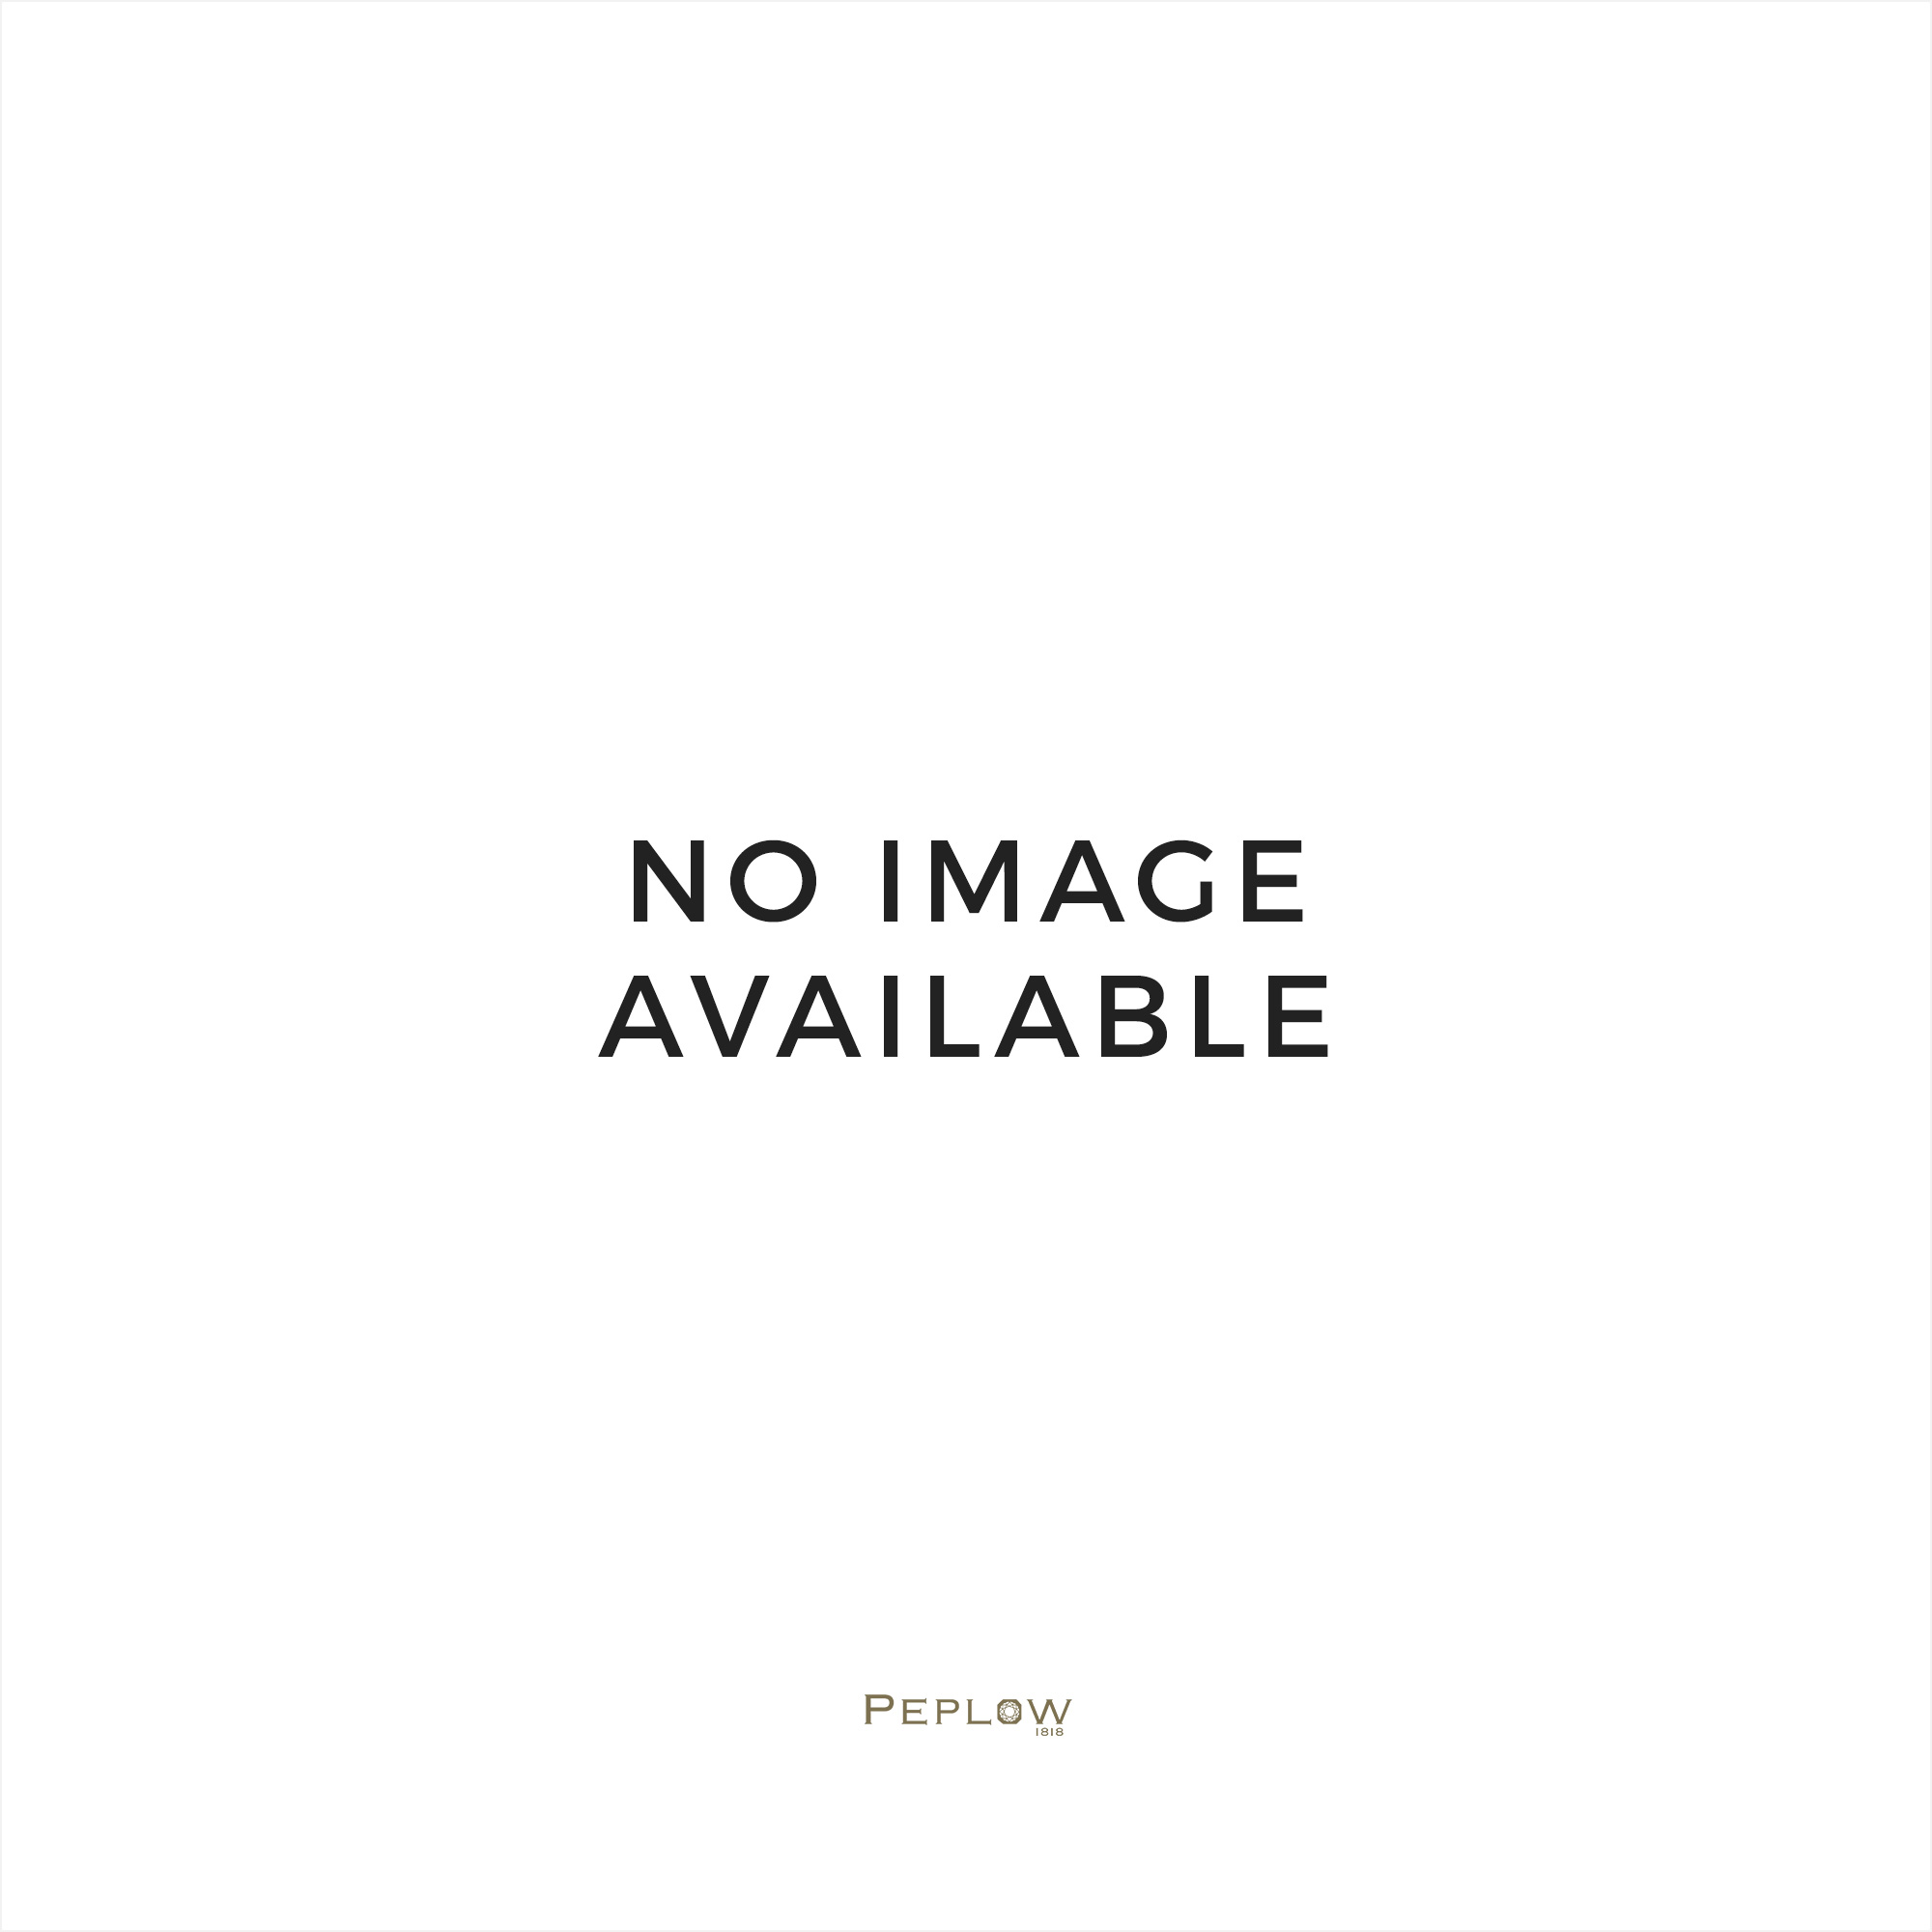 Platinum set 3 stone princess diamond ring, 0.78 carat total.